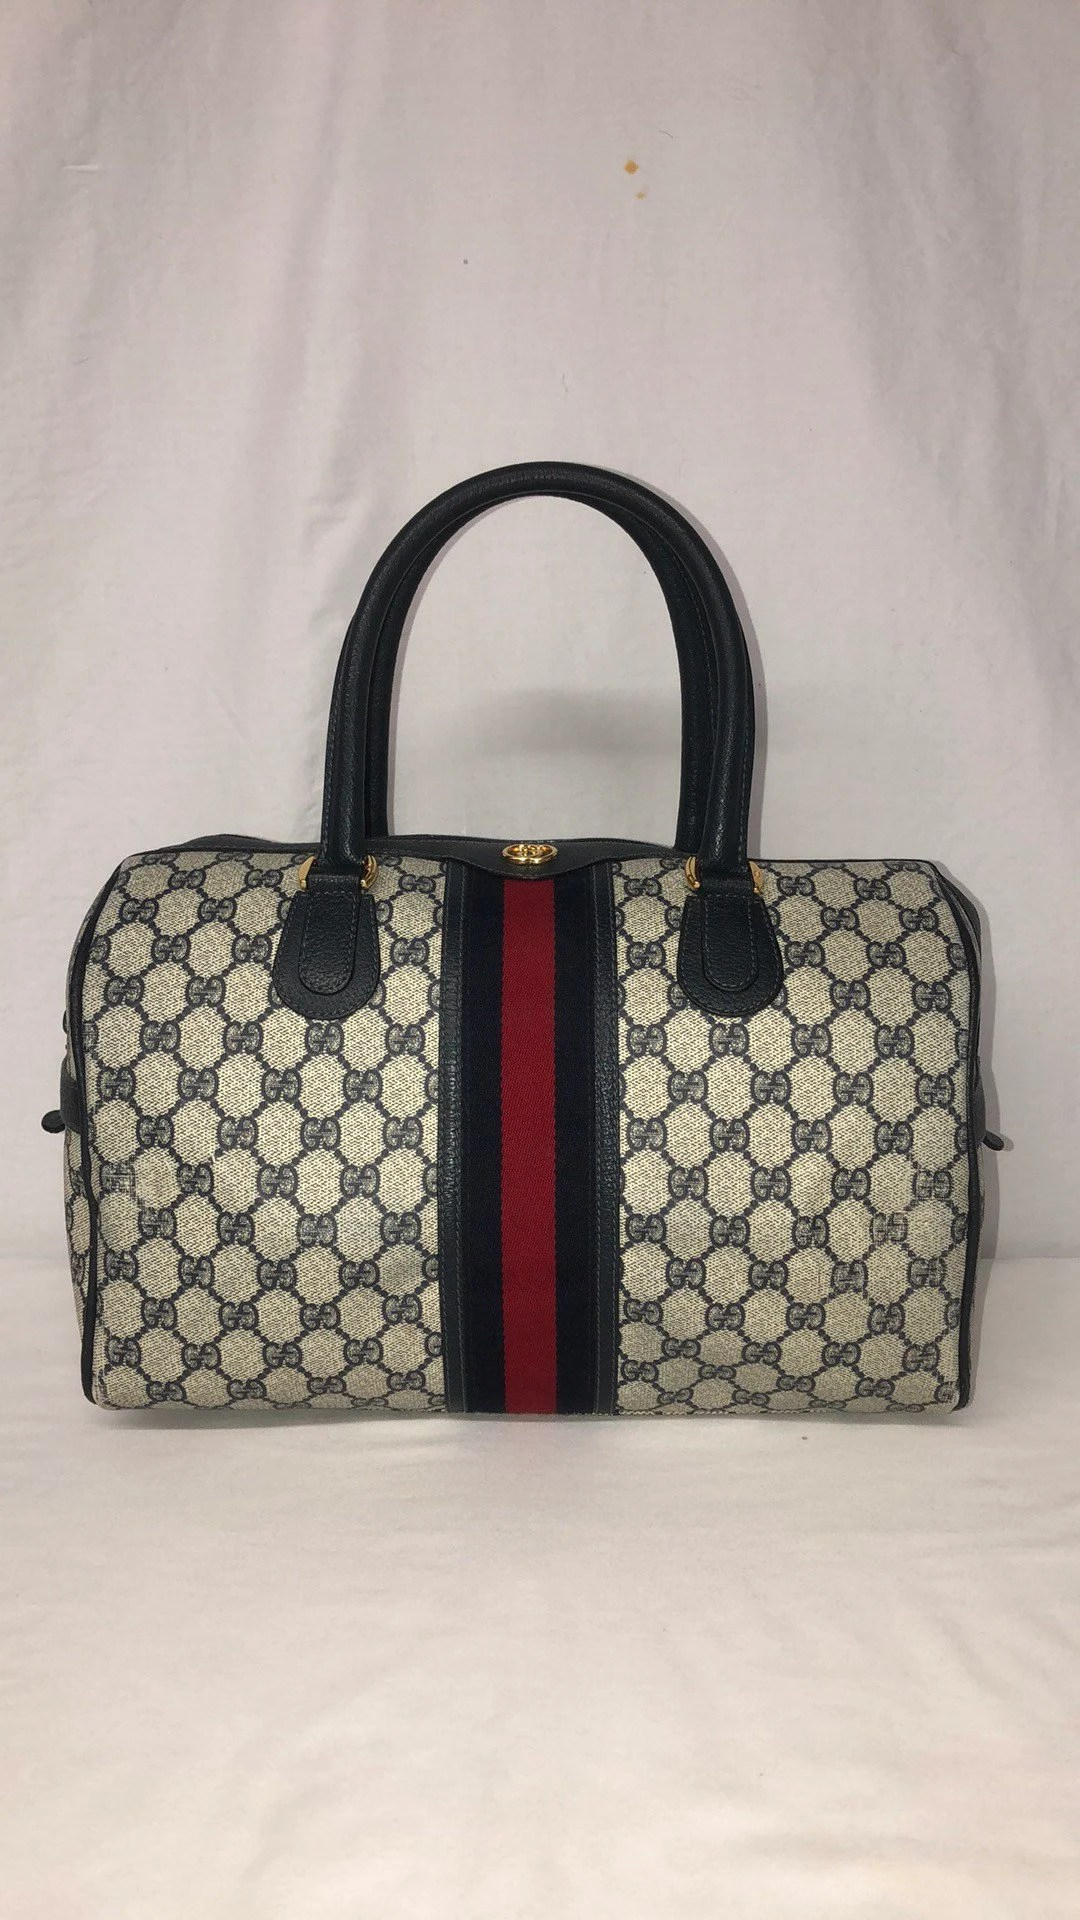 Etsy Vintage Gucci Authentic 80 S Vintage Gucci Supreme Gg Web Boston Speedy Bag Satchel 35cm